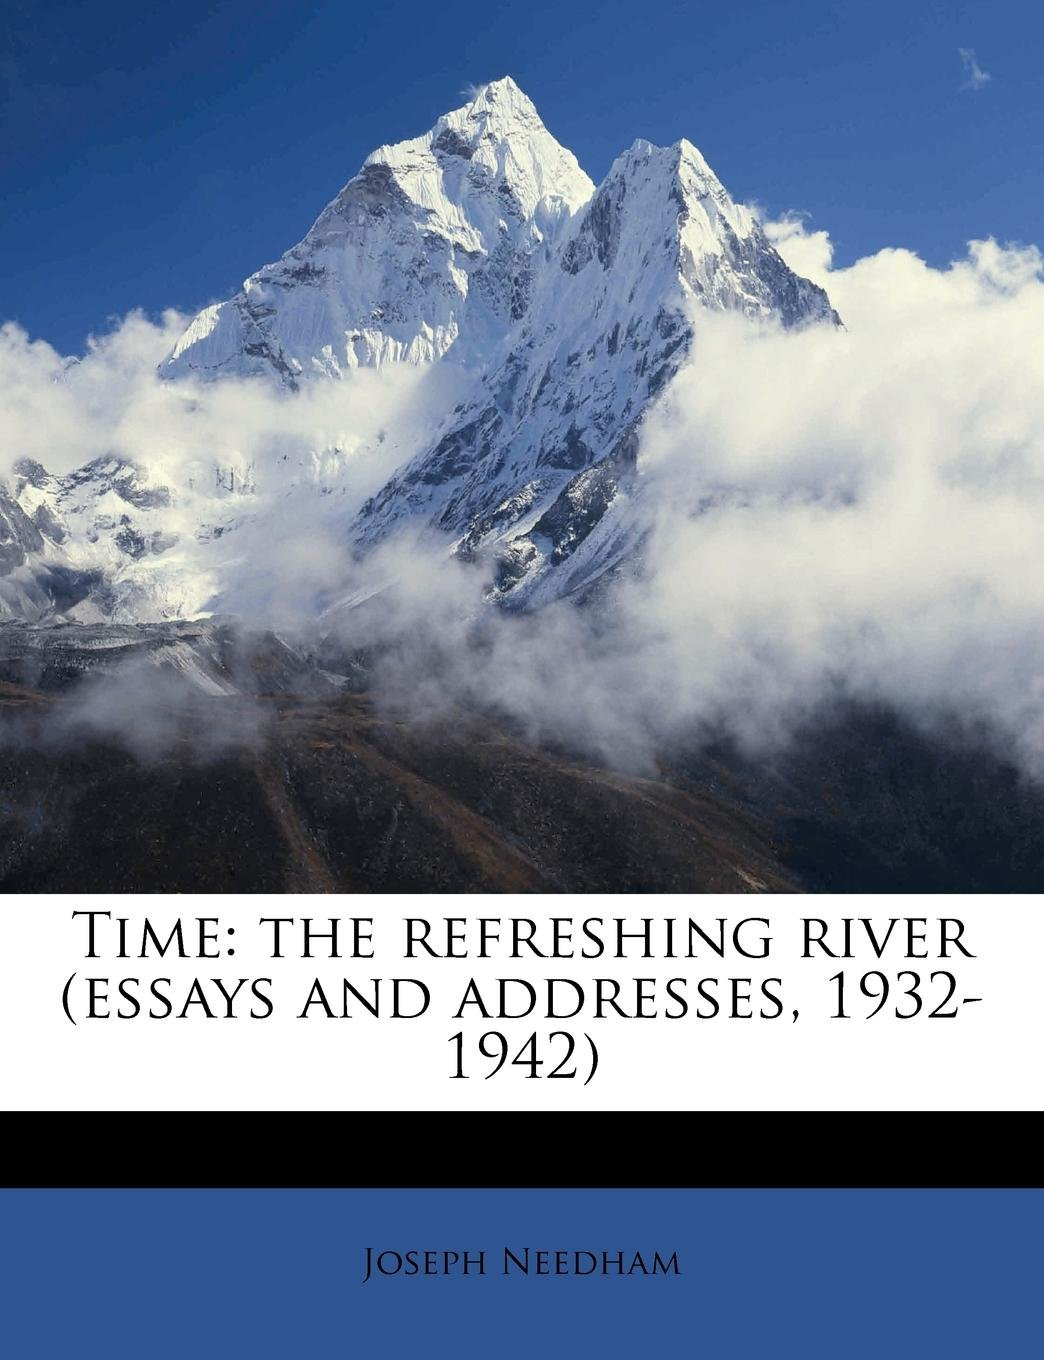 Download Time: the refreshing river (essays and addresses, 1932-1942) ebook